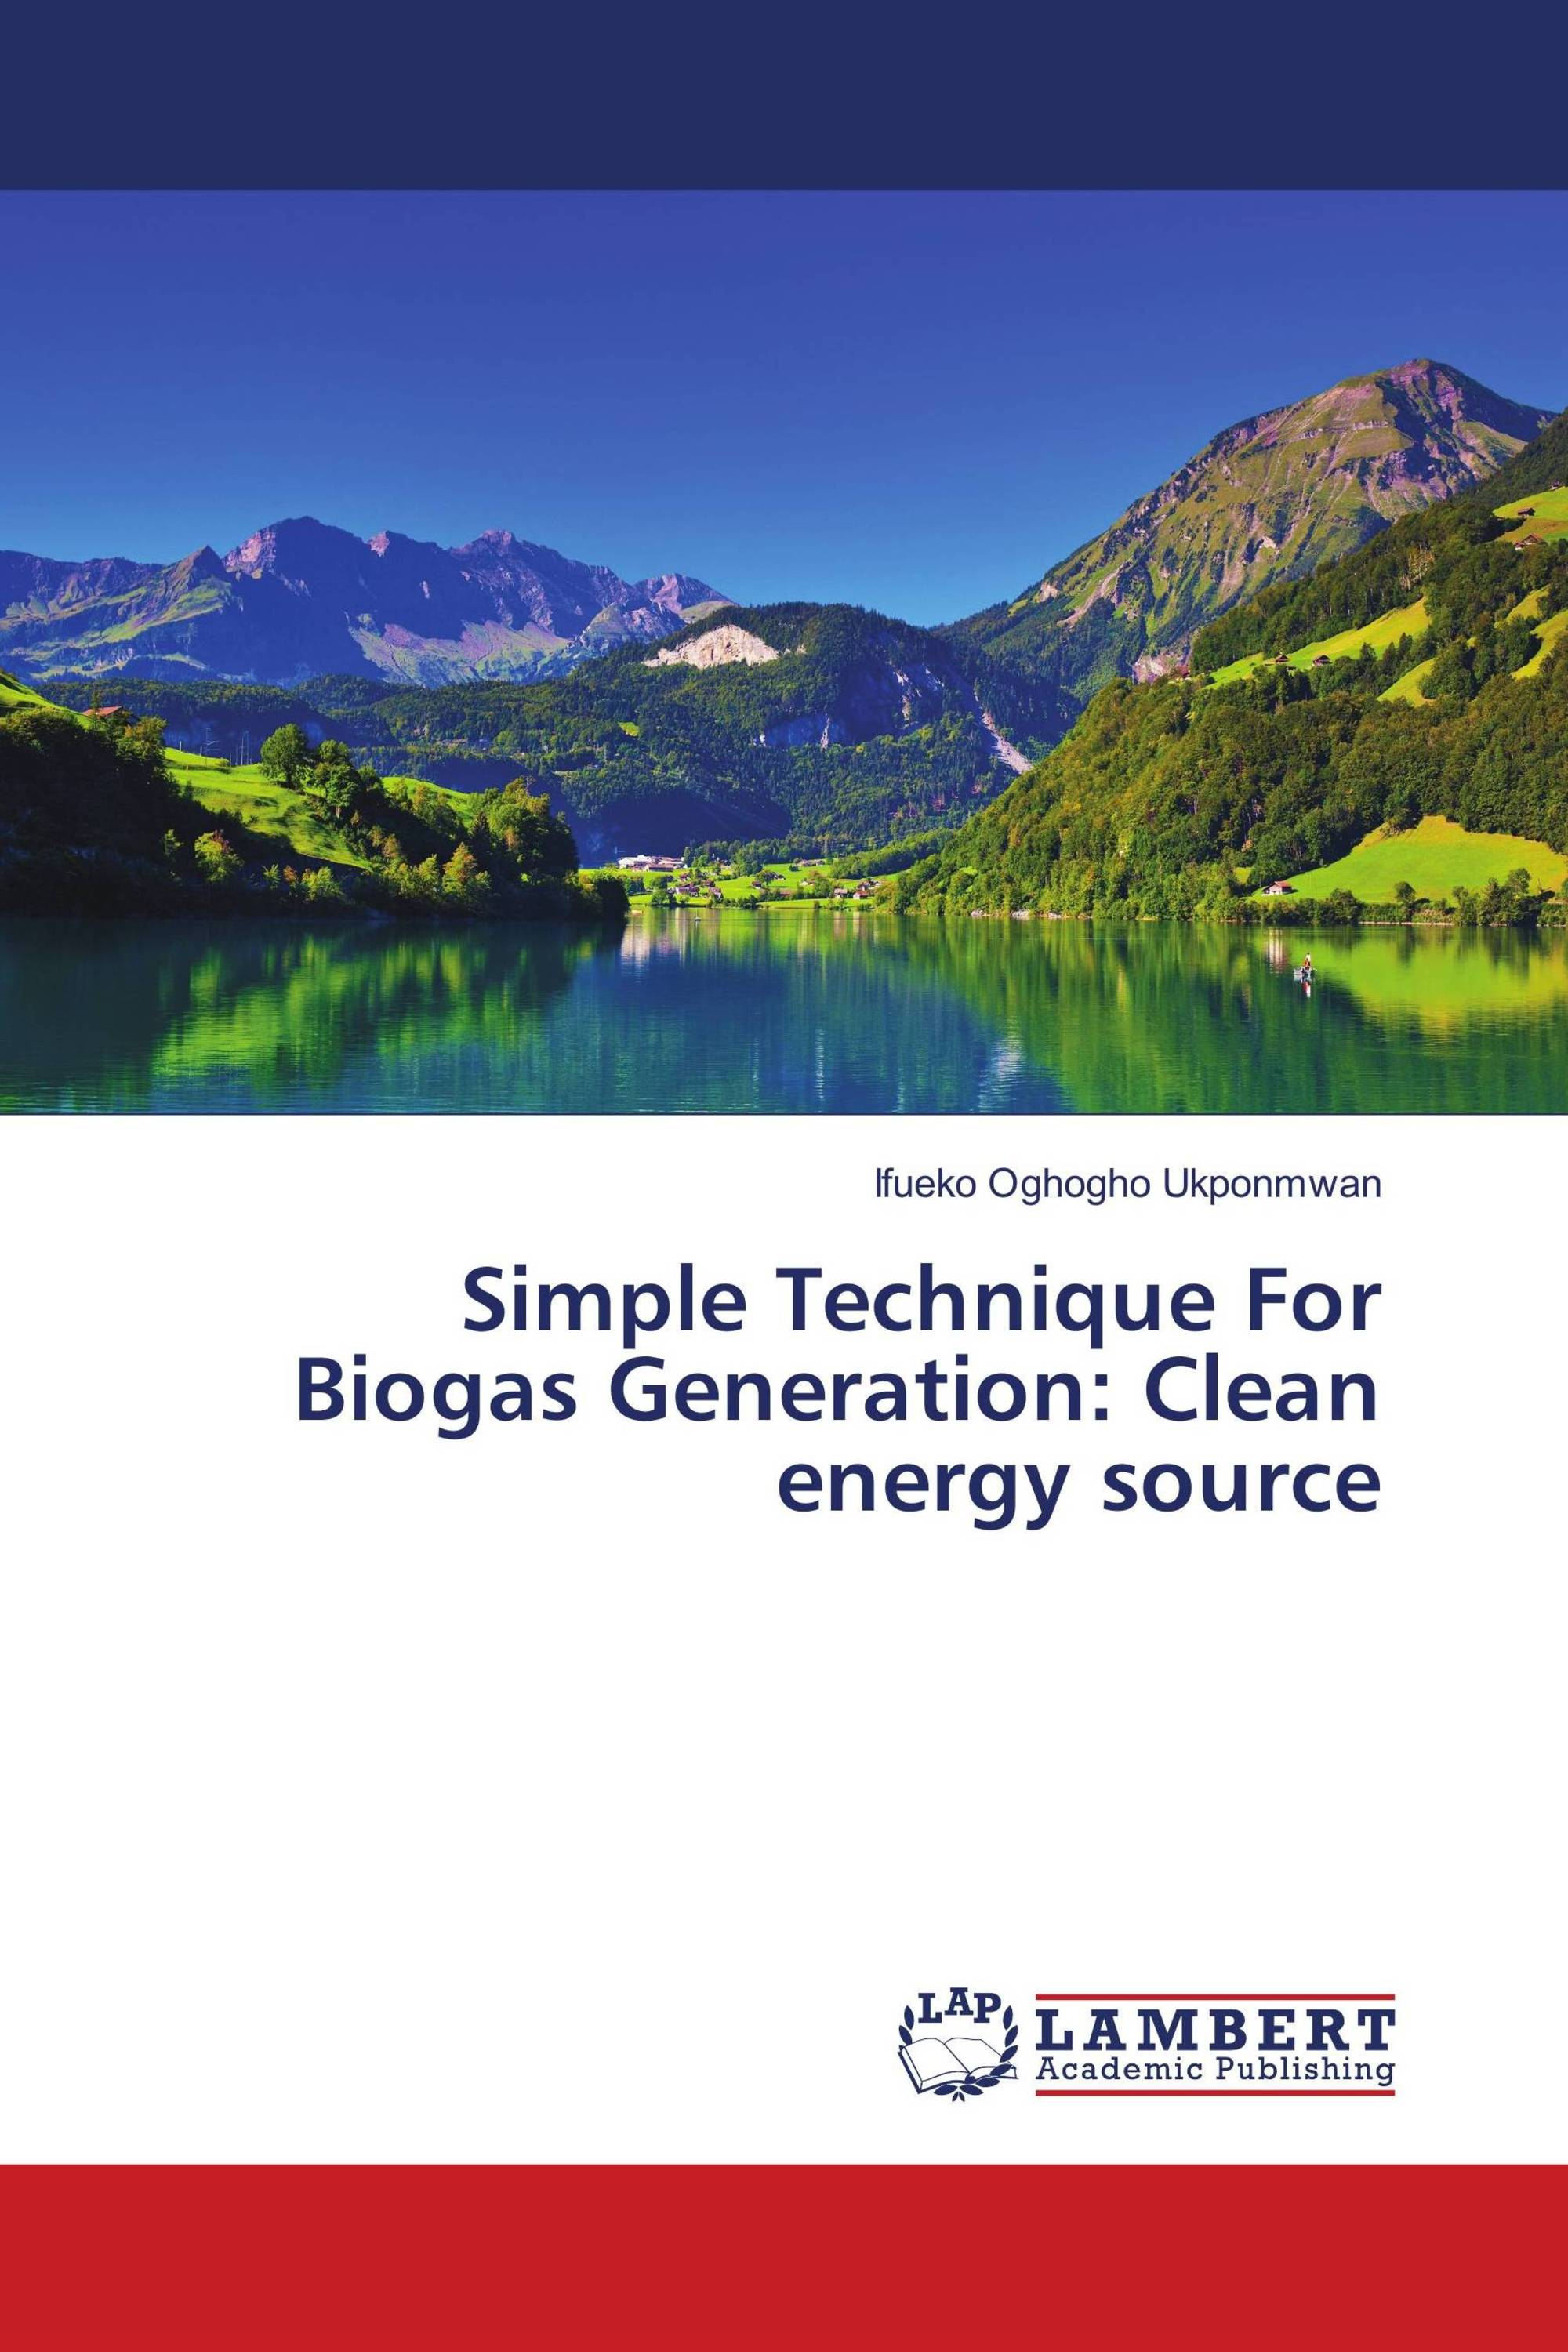 Simple Technique For Biogas Generation: Clean energy source